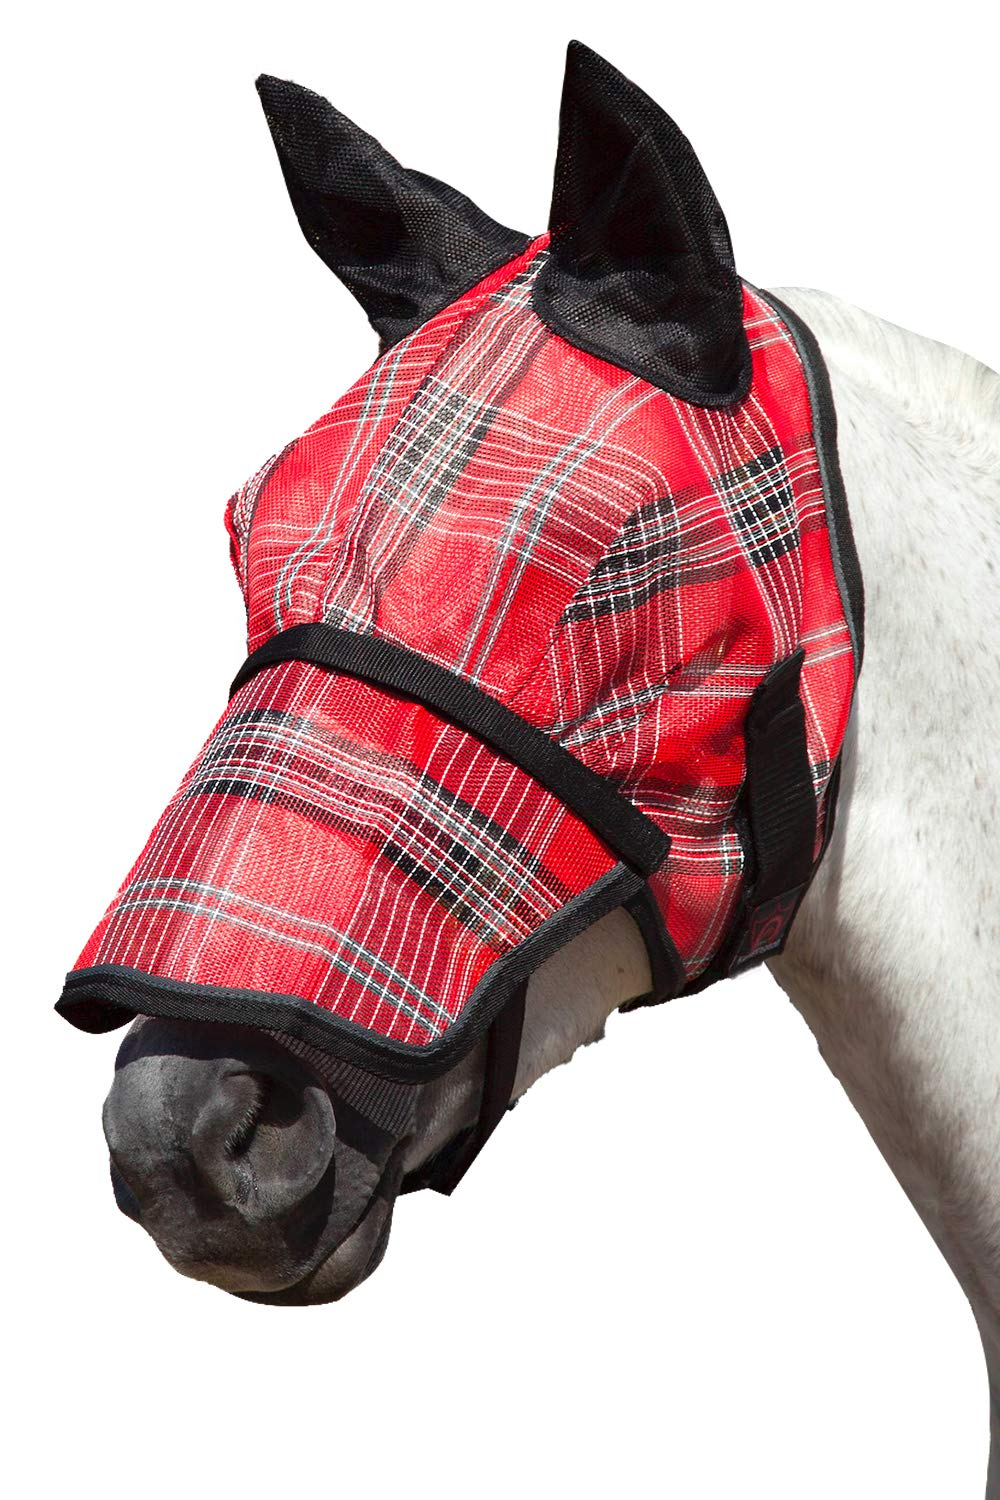 Kensington Signature Fly Mask with Removable Nose and Soft Mesh Ears - Protects Horses Face, Nose and Ears from Biting Insects and UV Rays While Allowing Full Visibility by Kensington